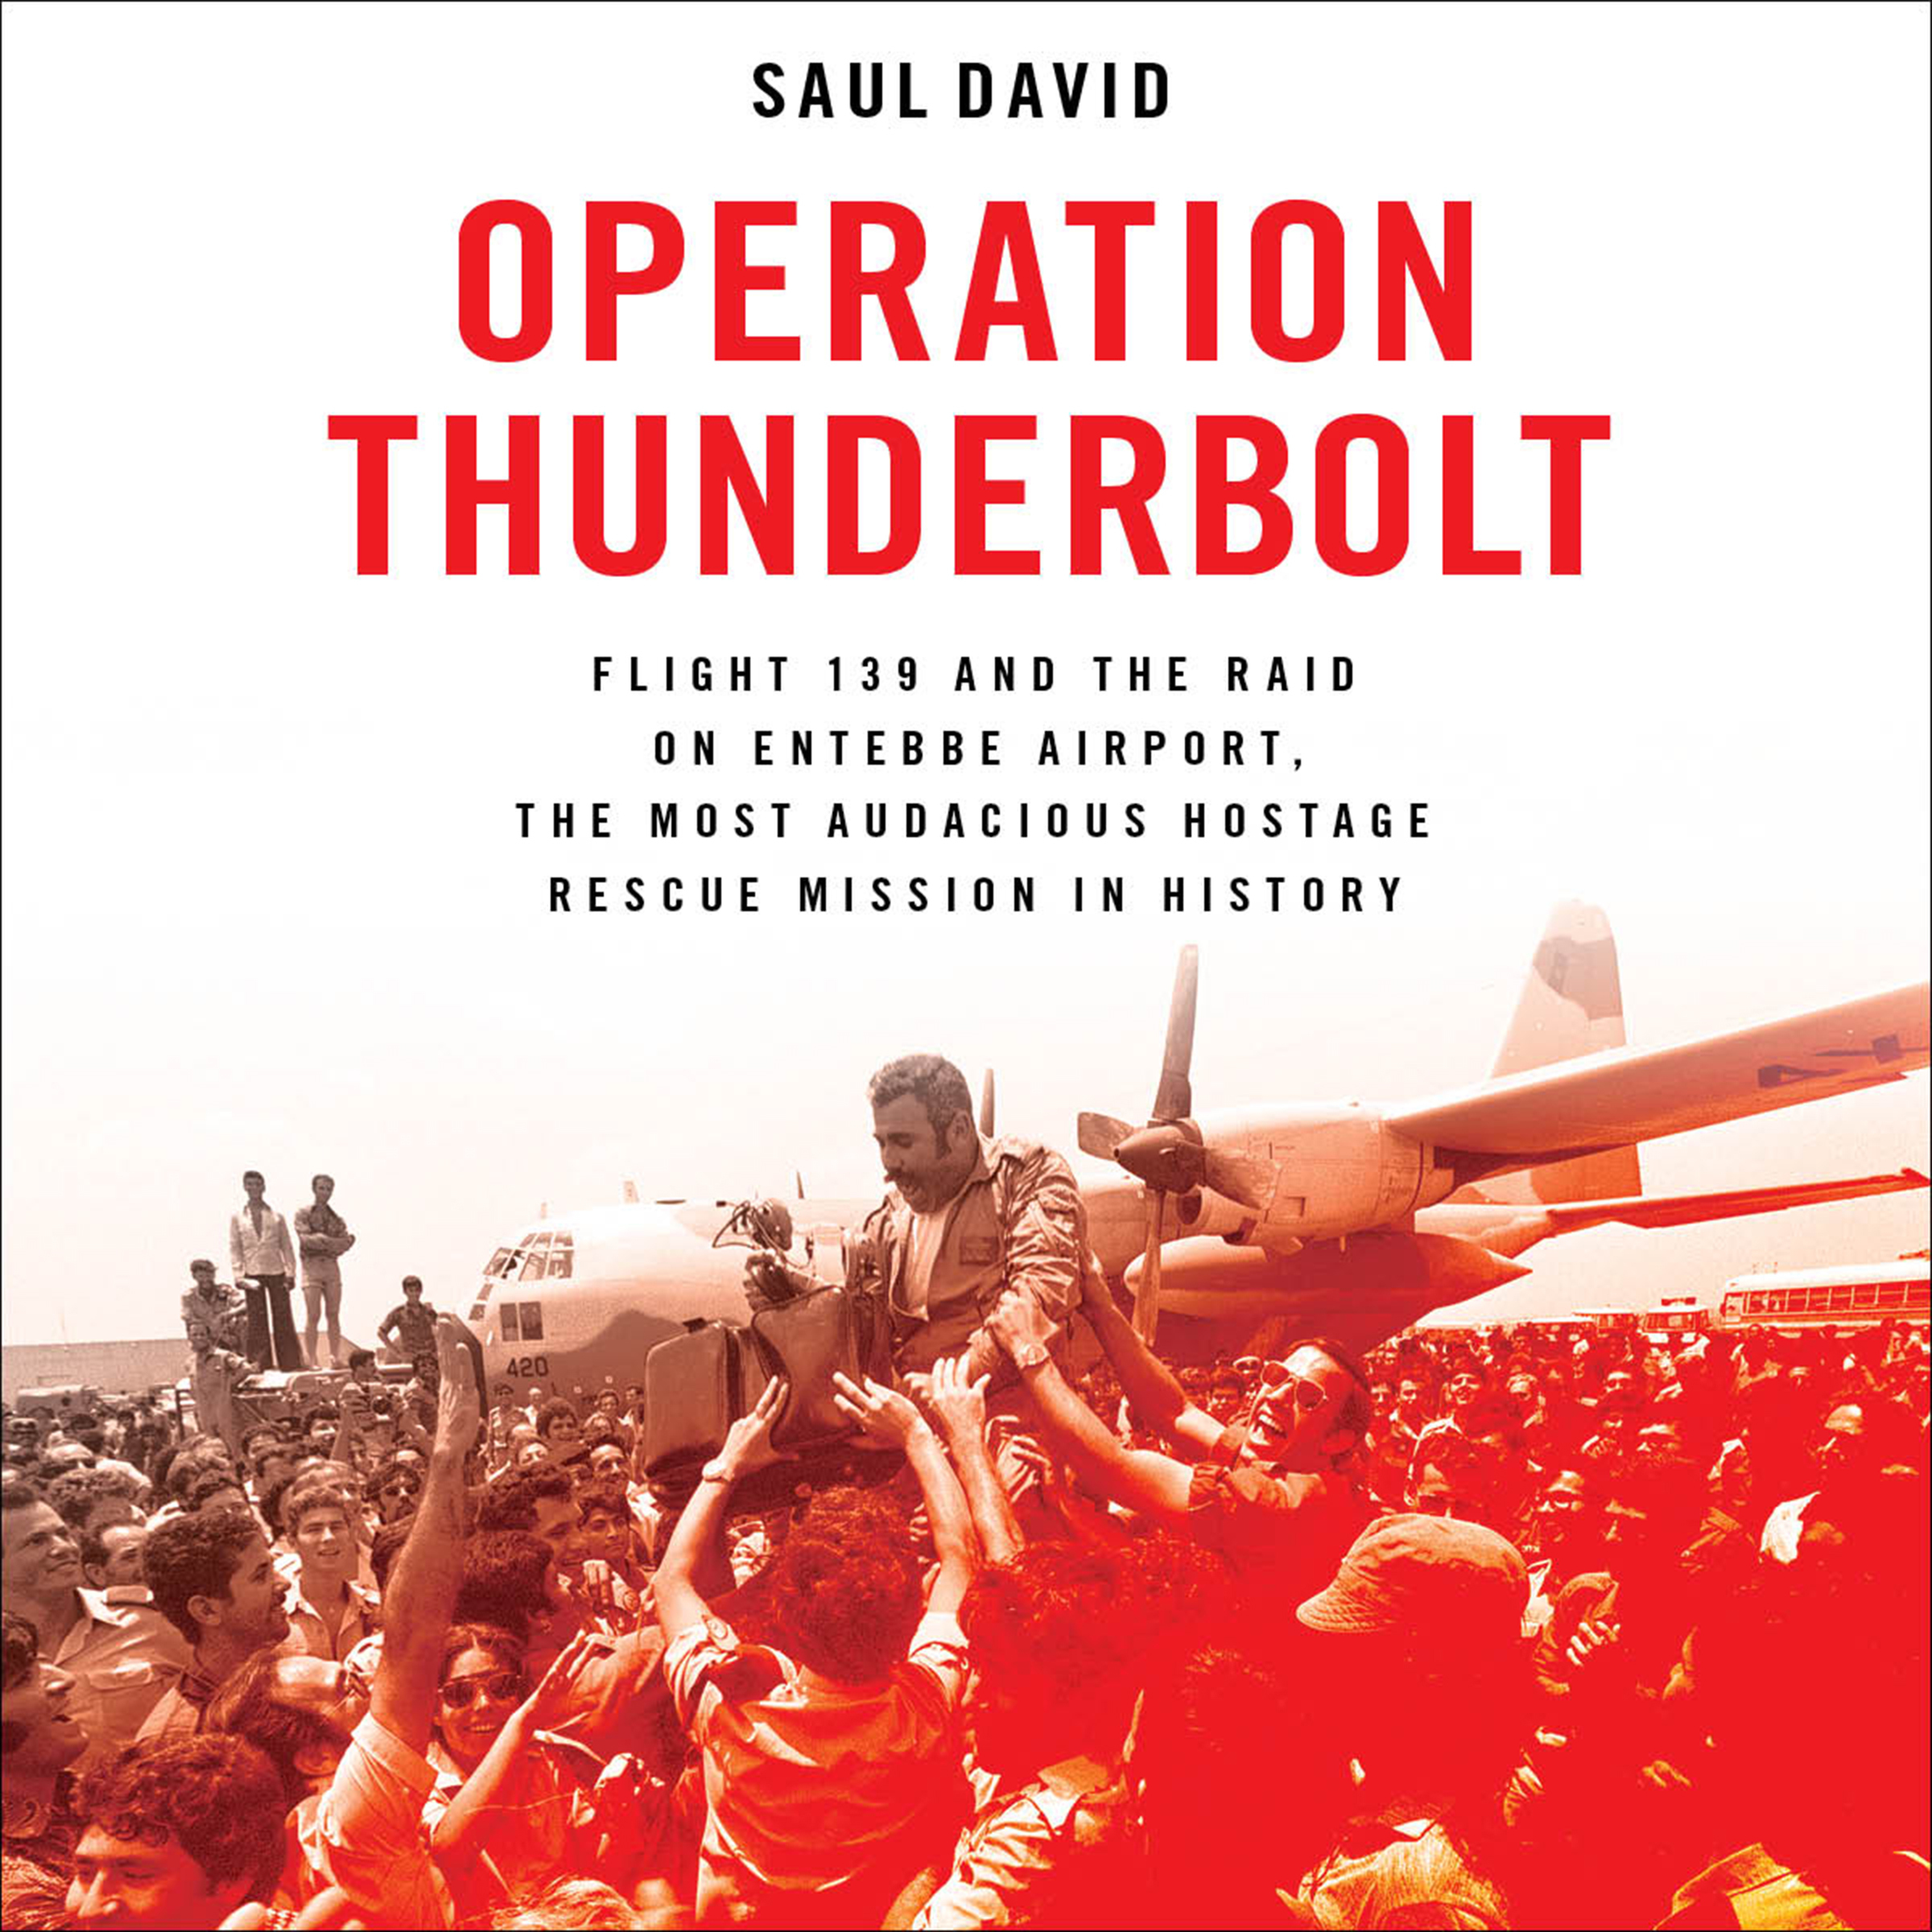 Printable Operation Thunderbolt: Flight 139 and the Raid on Entebbe Airport, the Most Audacious Hostage Rescue Mission in History Audiobook Cover Art